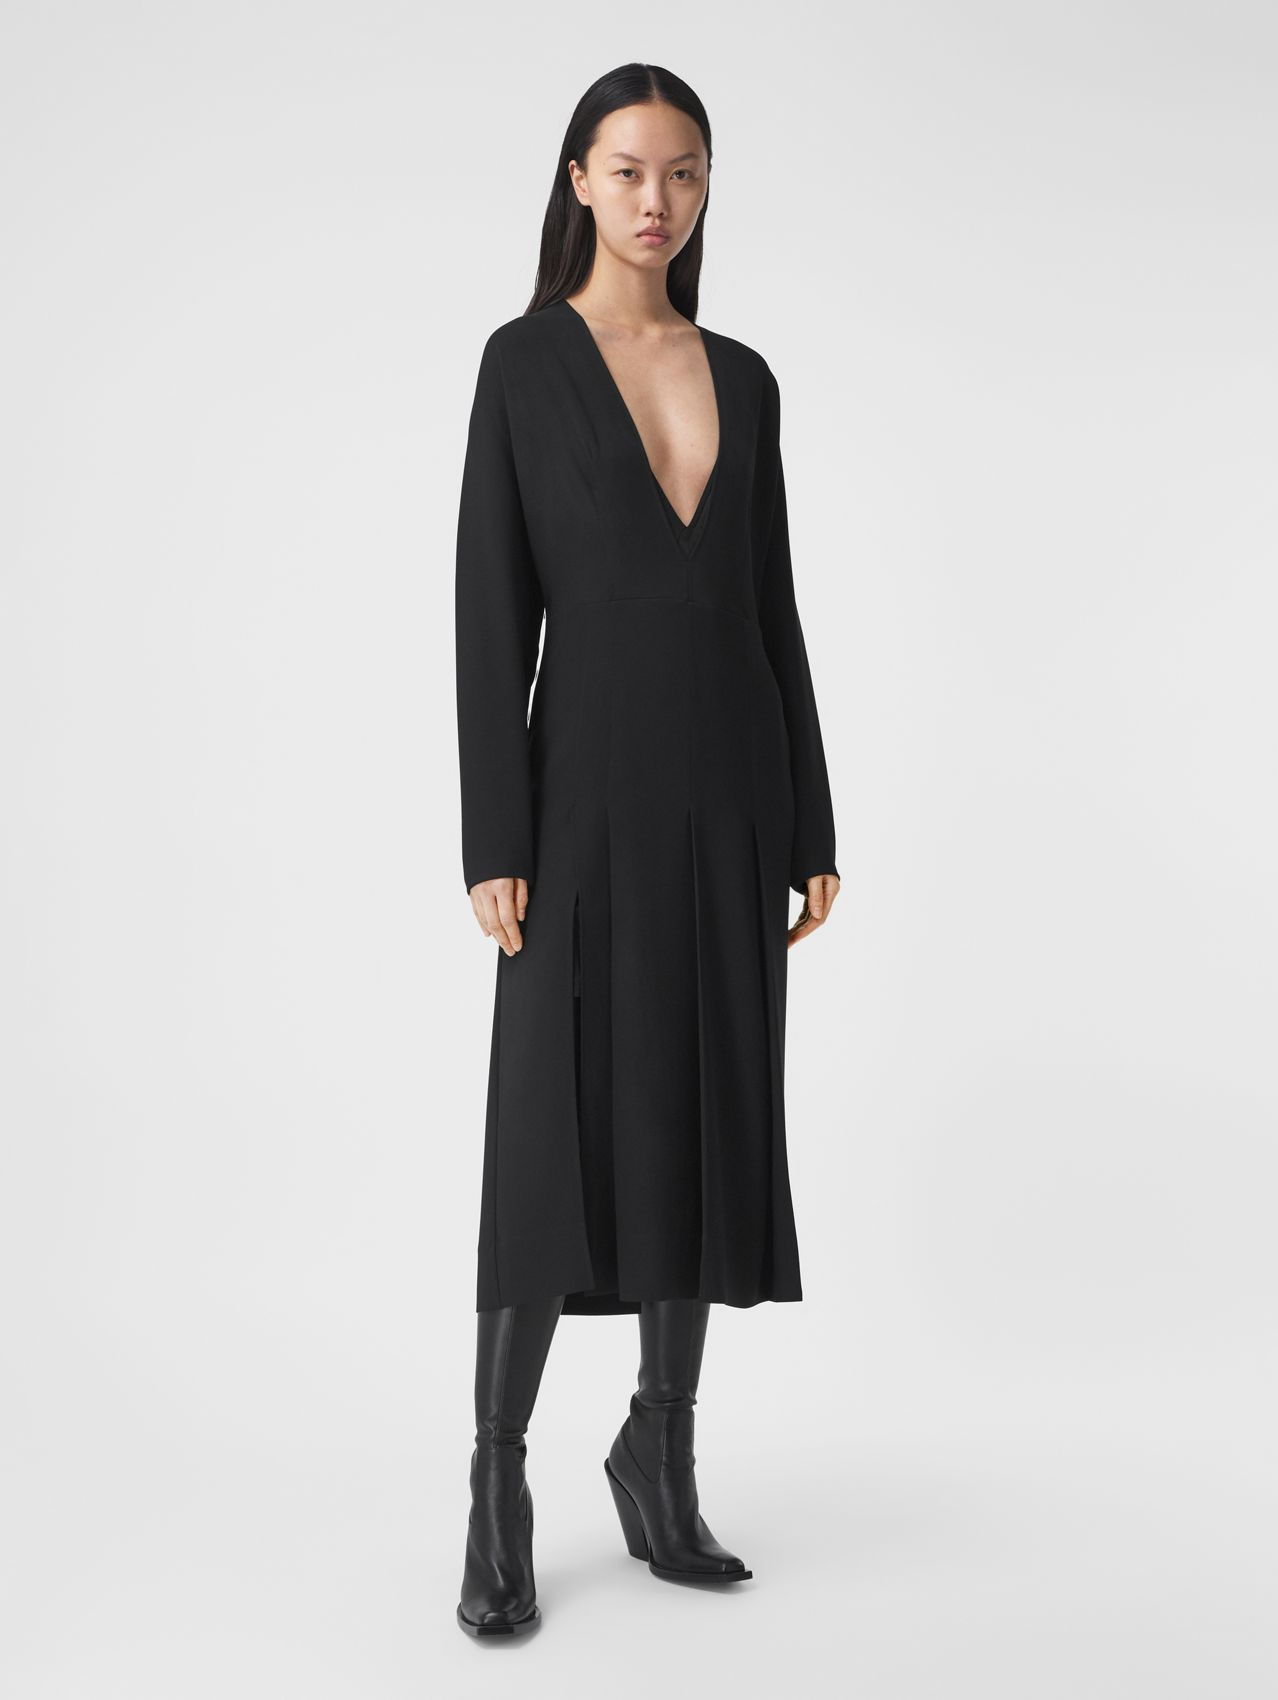 Pleated Silk Cady Dress with Detachable Slip in Black